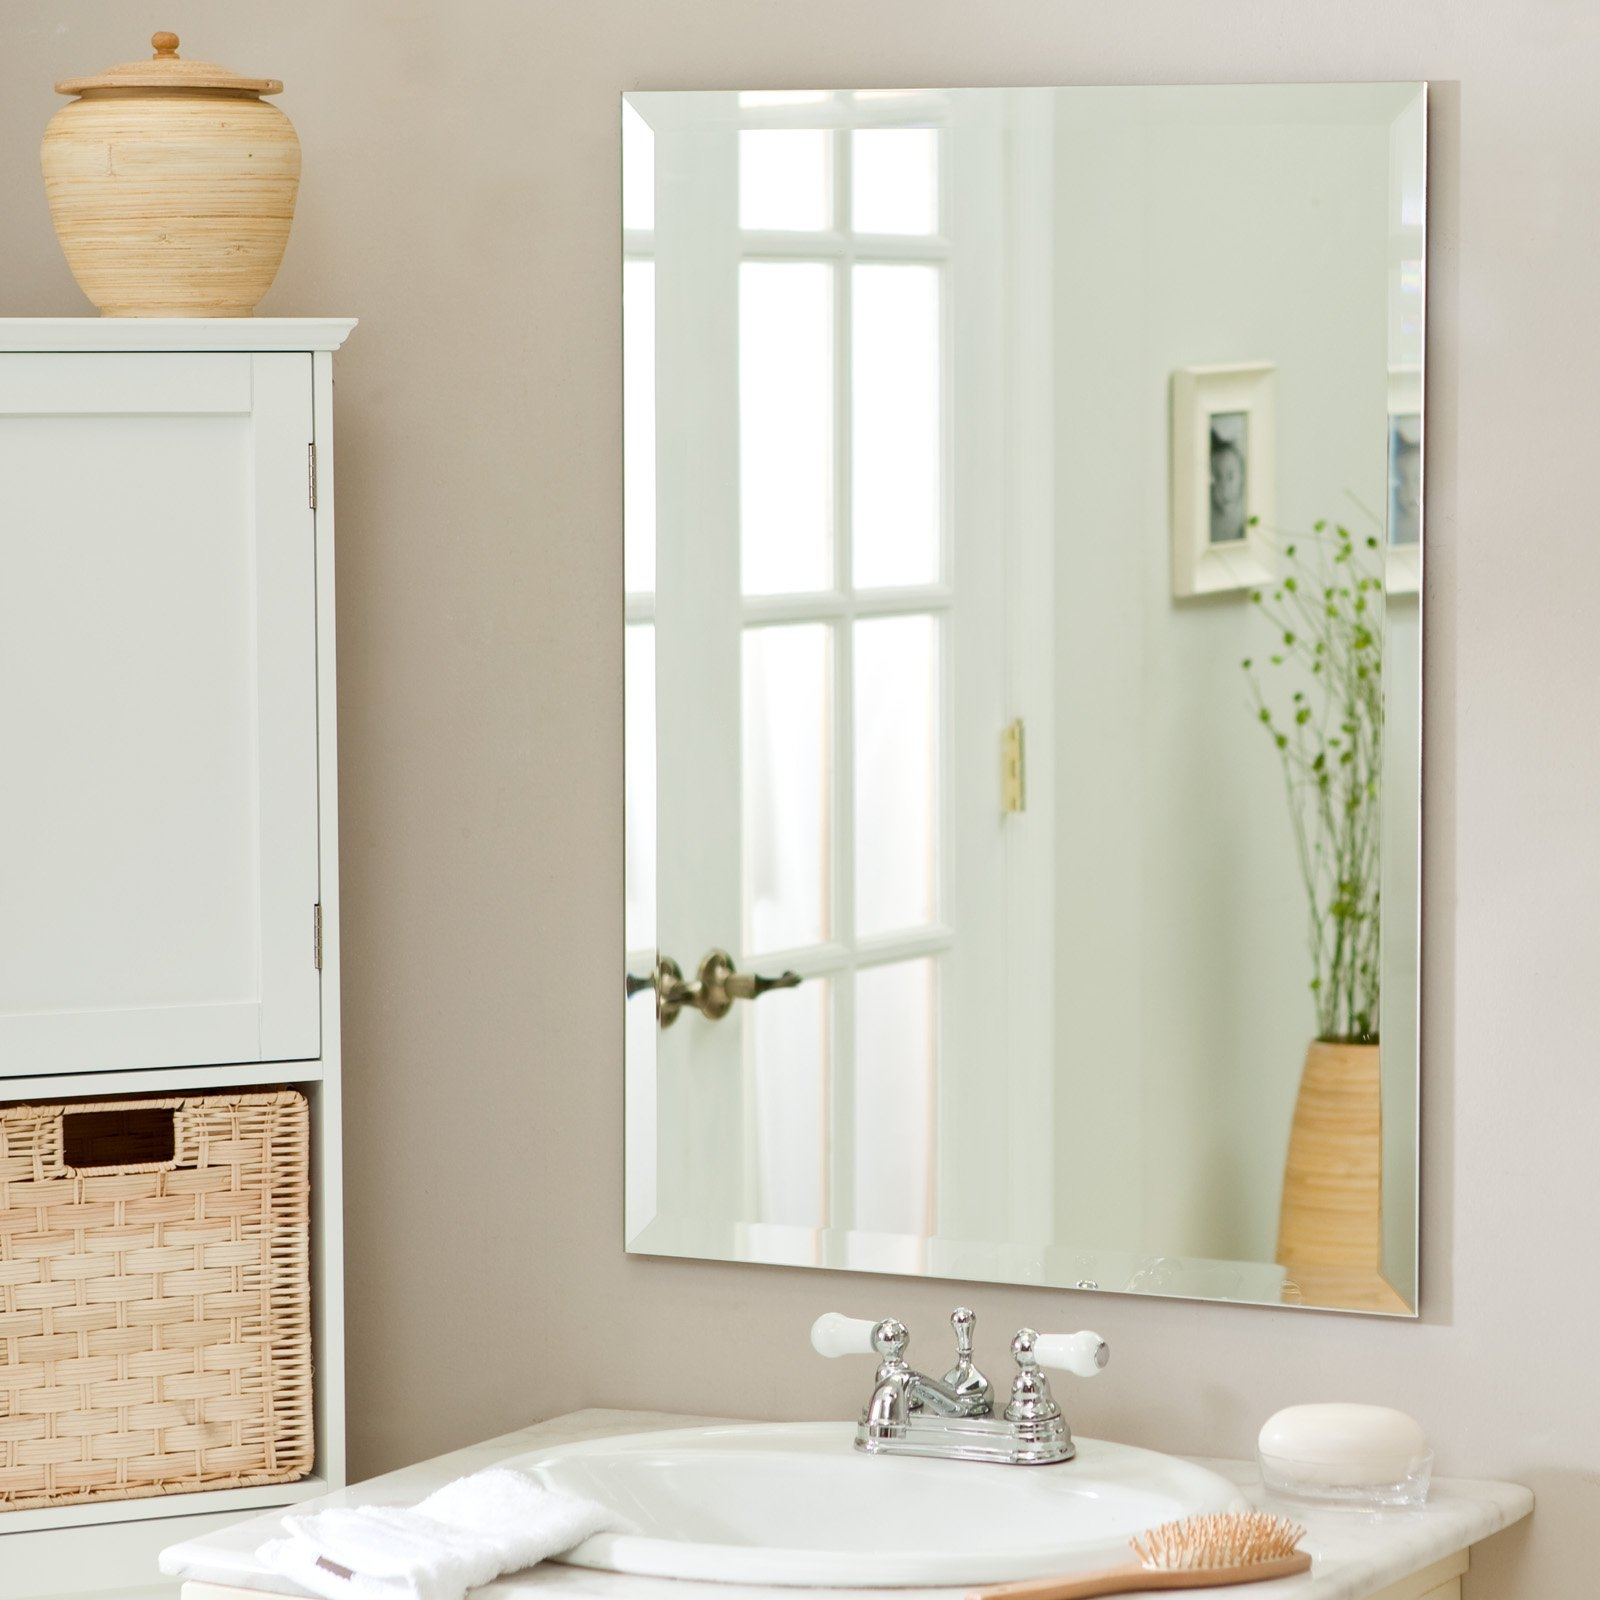 Large Glass Mirrors For Bathrooms